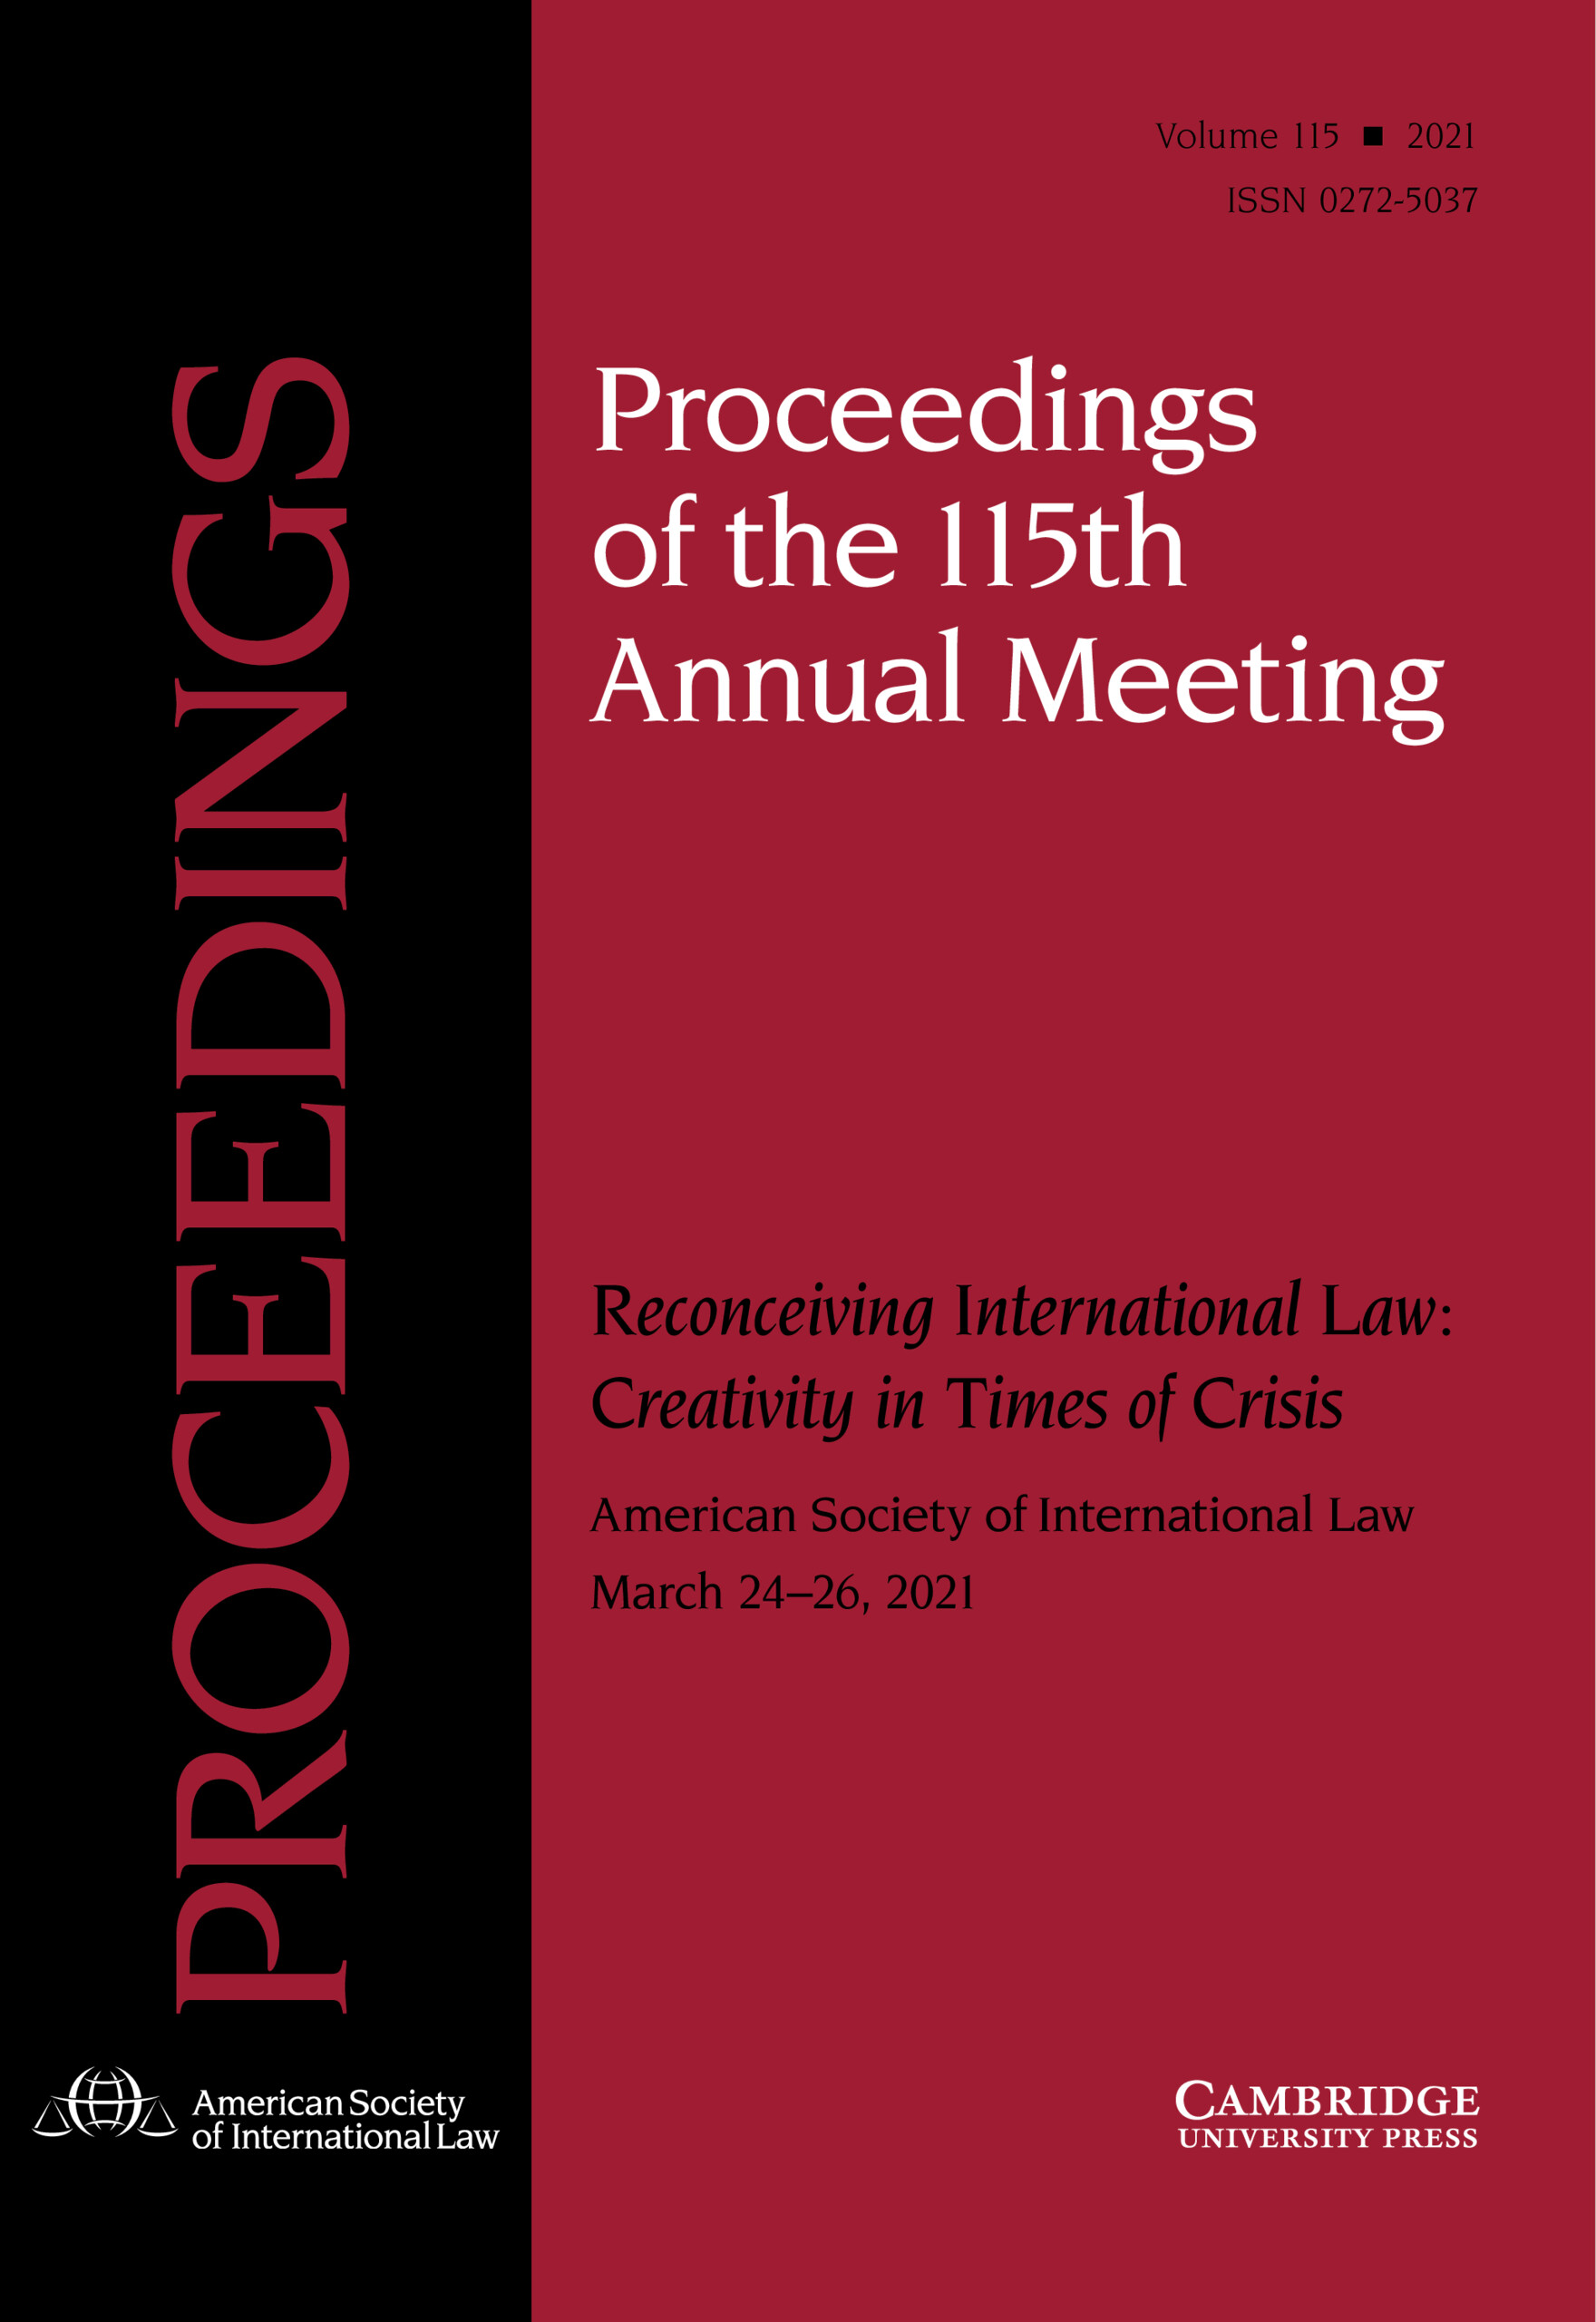 Proceedings of the ASIL Annual Meeting